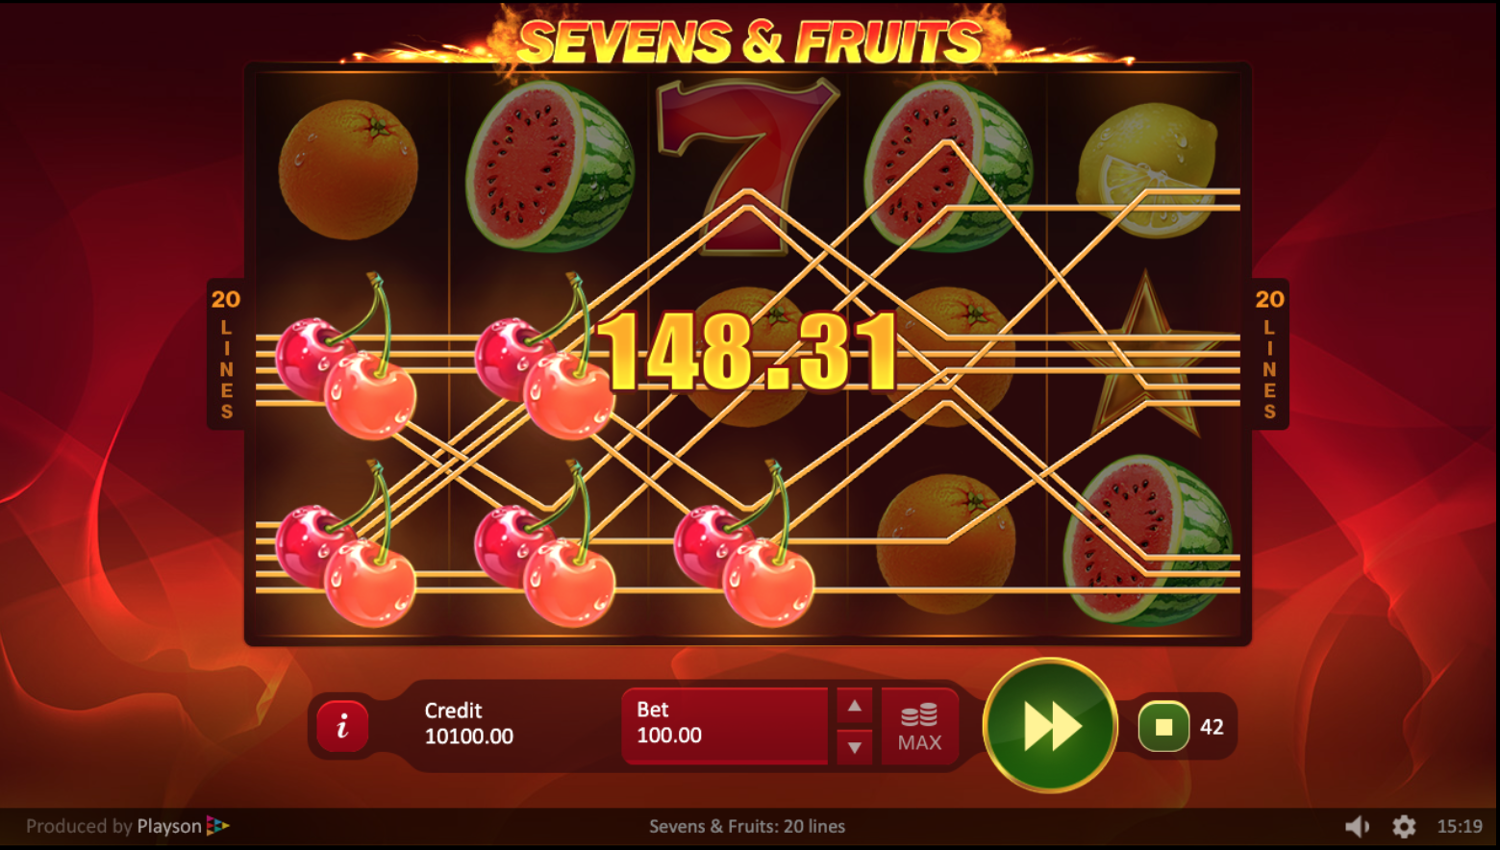 Sevens & Fruits win